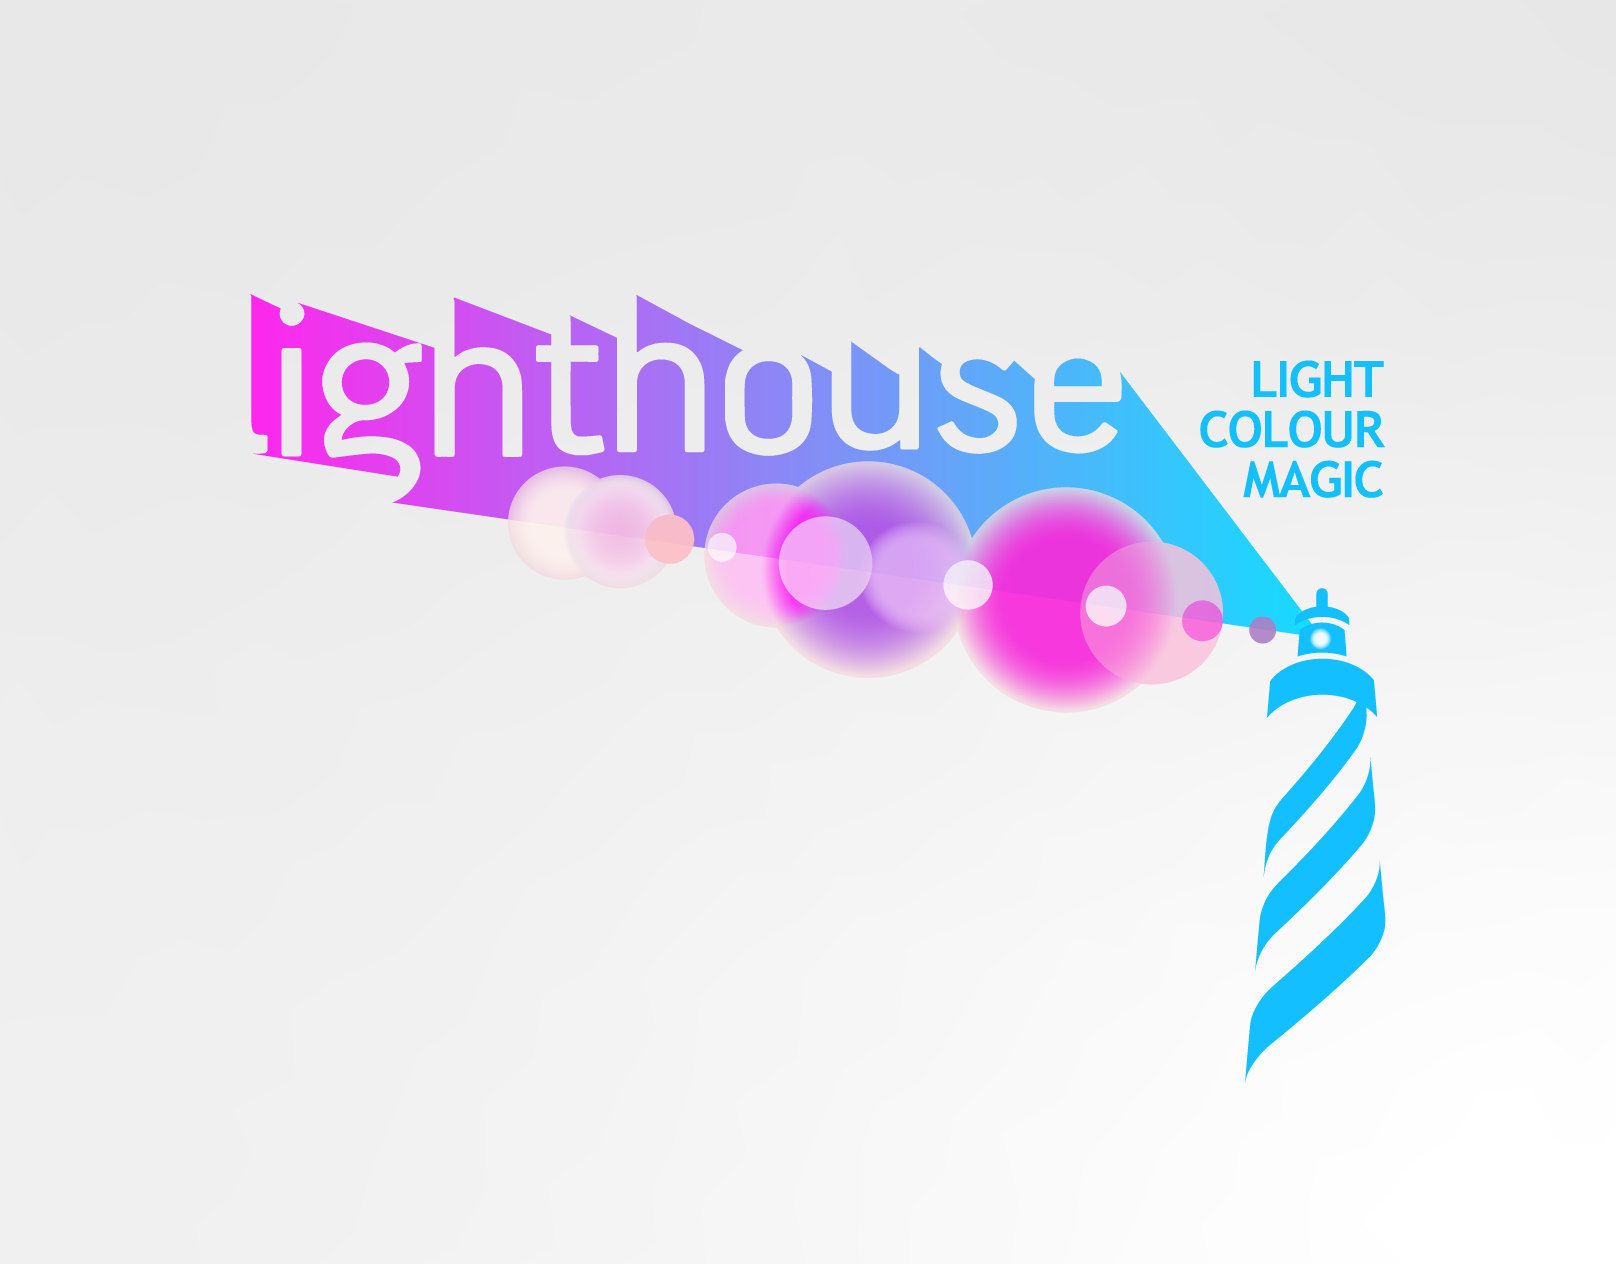 Lighthouse VFX